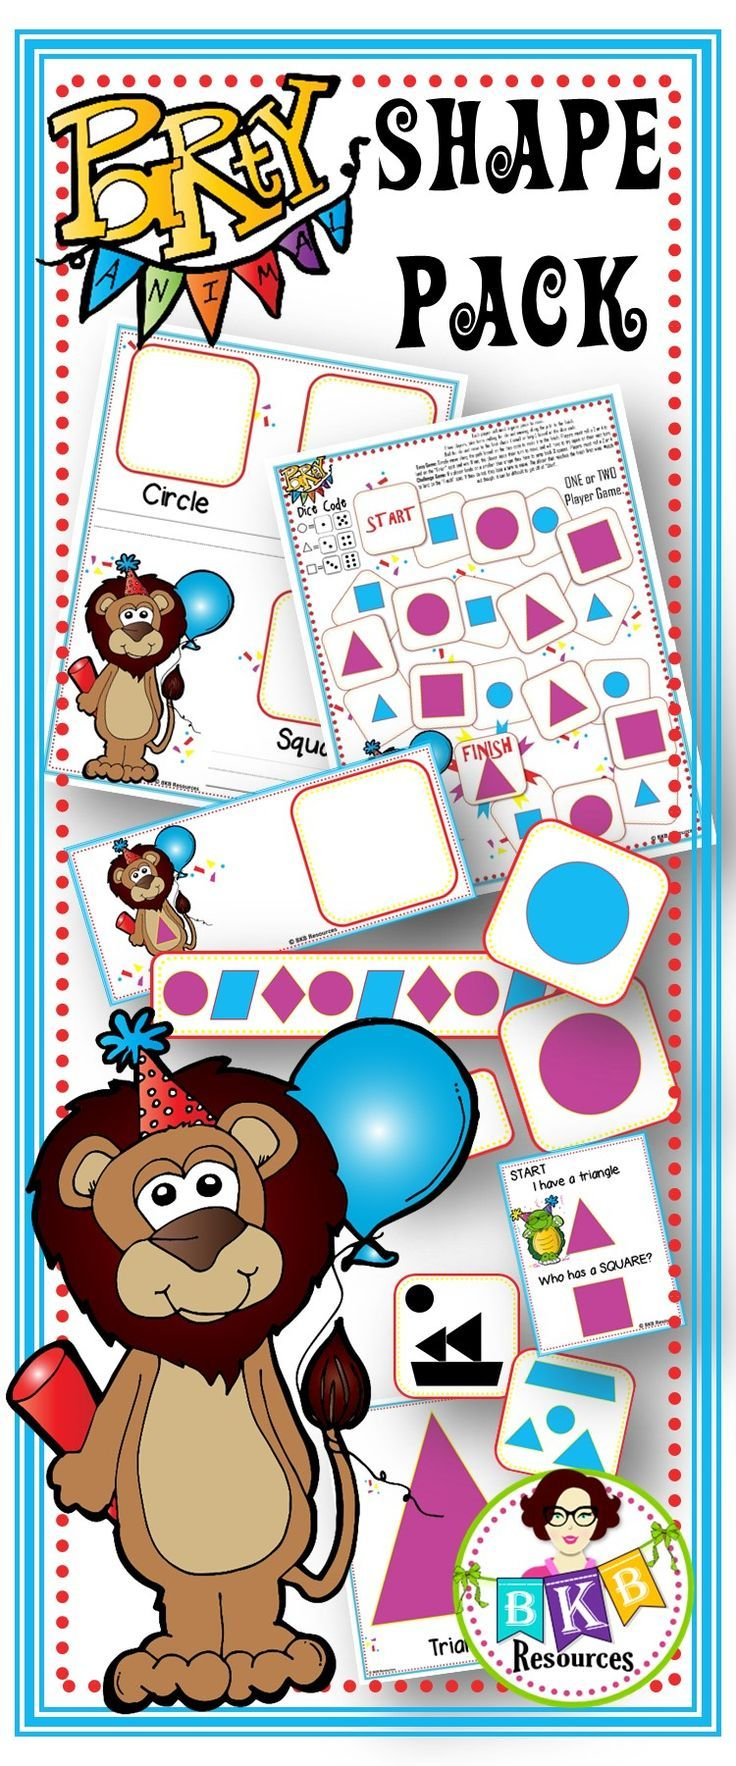 Huge Shape Pack filled with over 30 activities to help students learn 2D shapes in a fun and engaging way. Discounted price - huge savings! Puzzles, posters, no prep printables, tracing, graphing, games, sorting, drawing and much more. CLICK NOW to view o